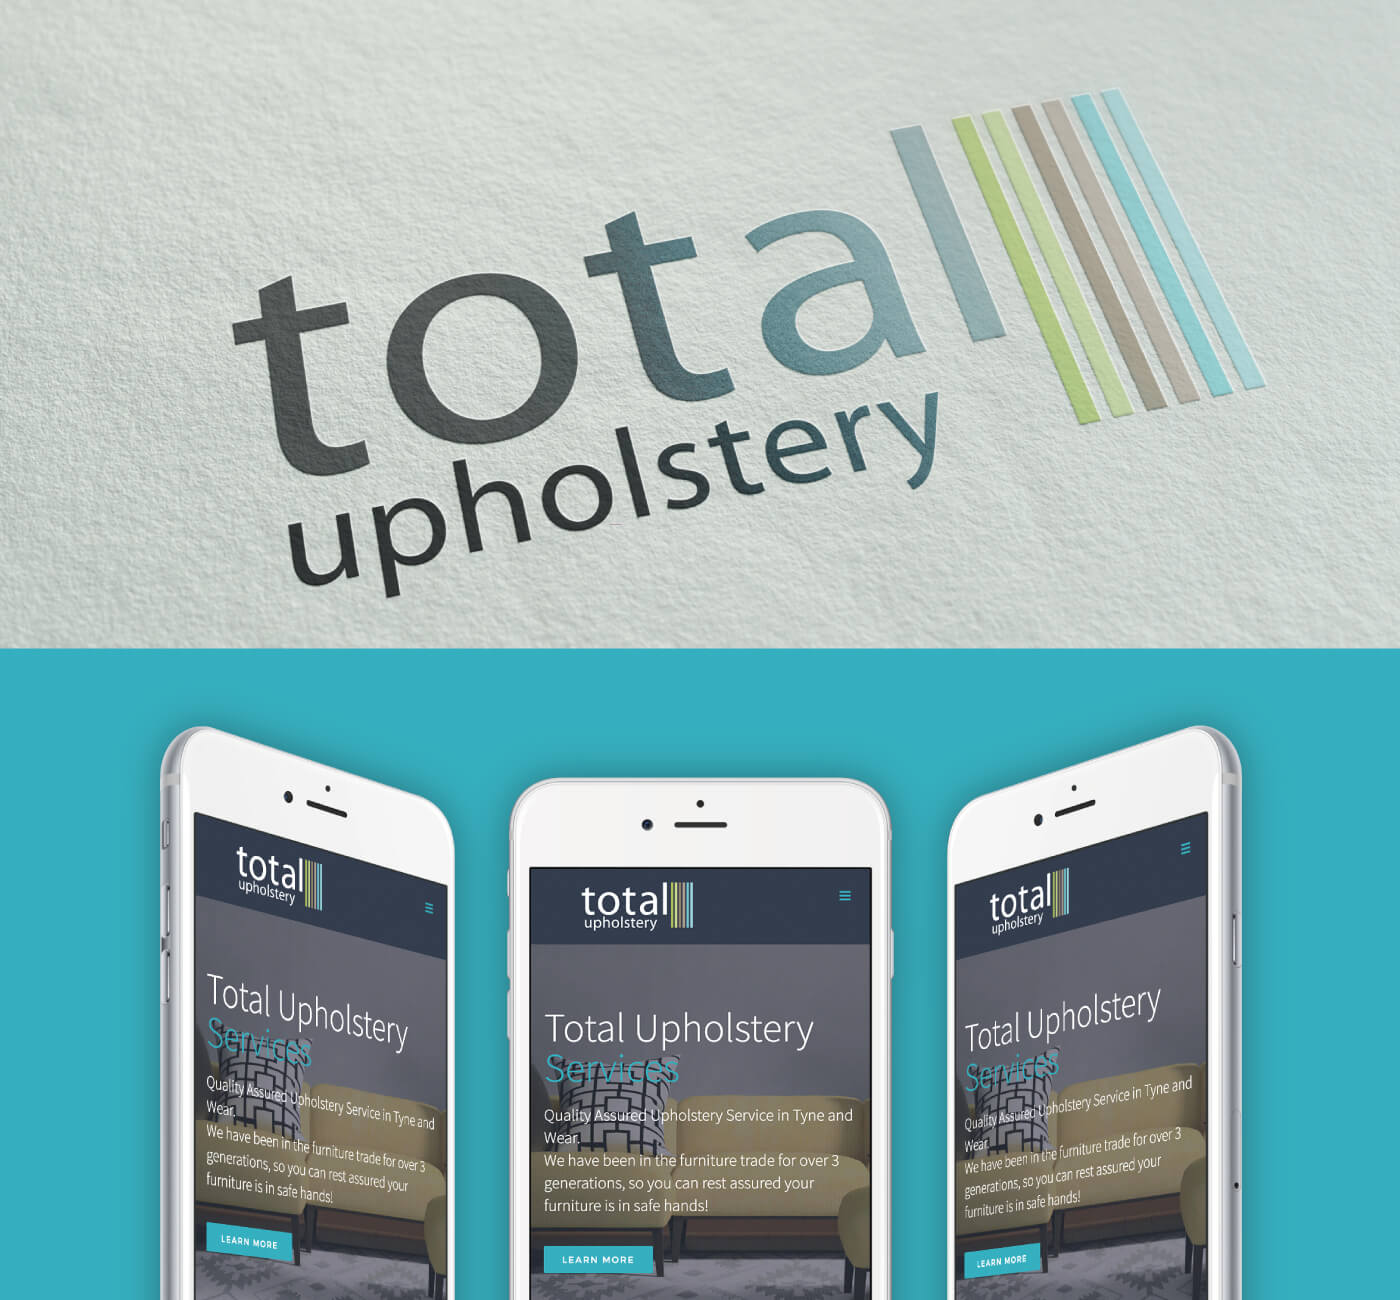 Total Upholstery